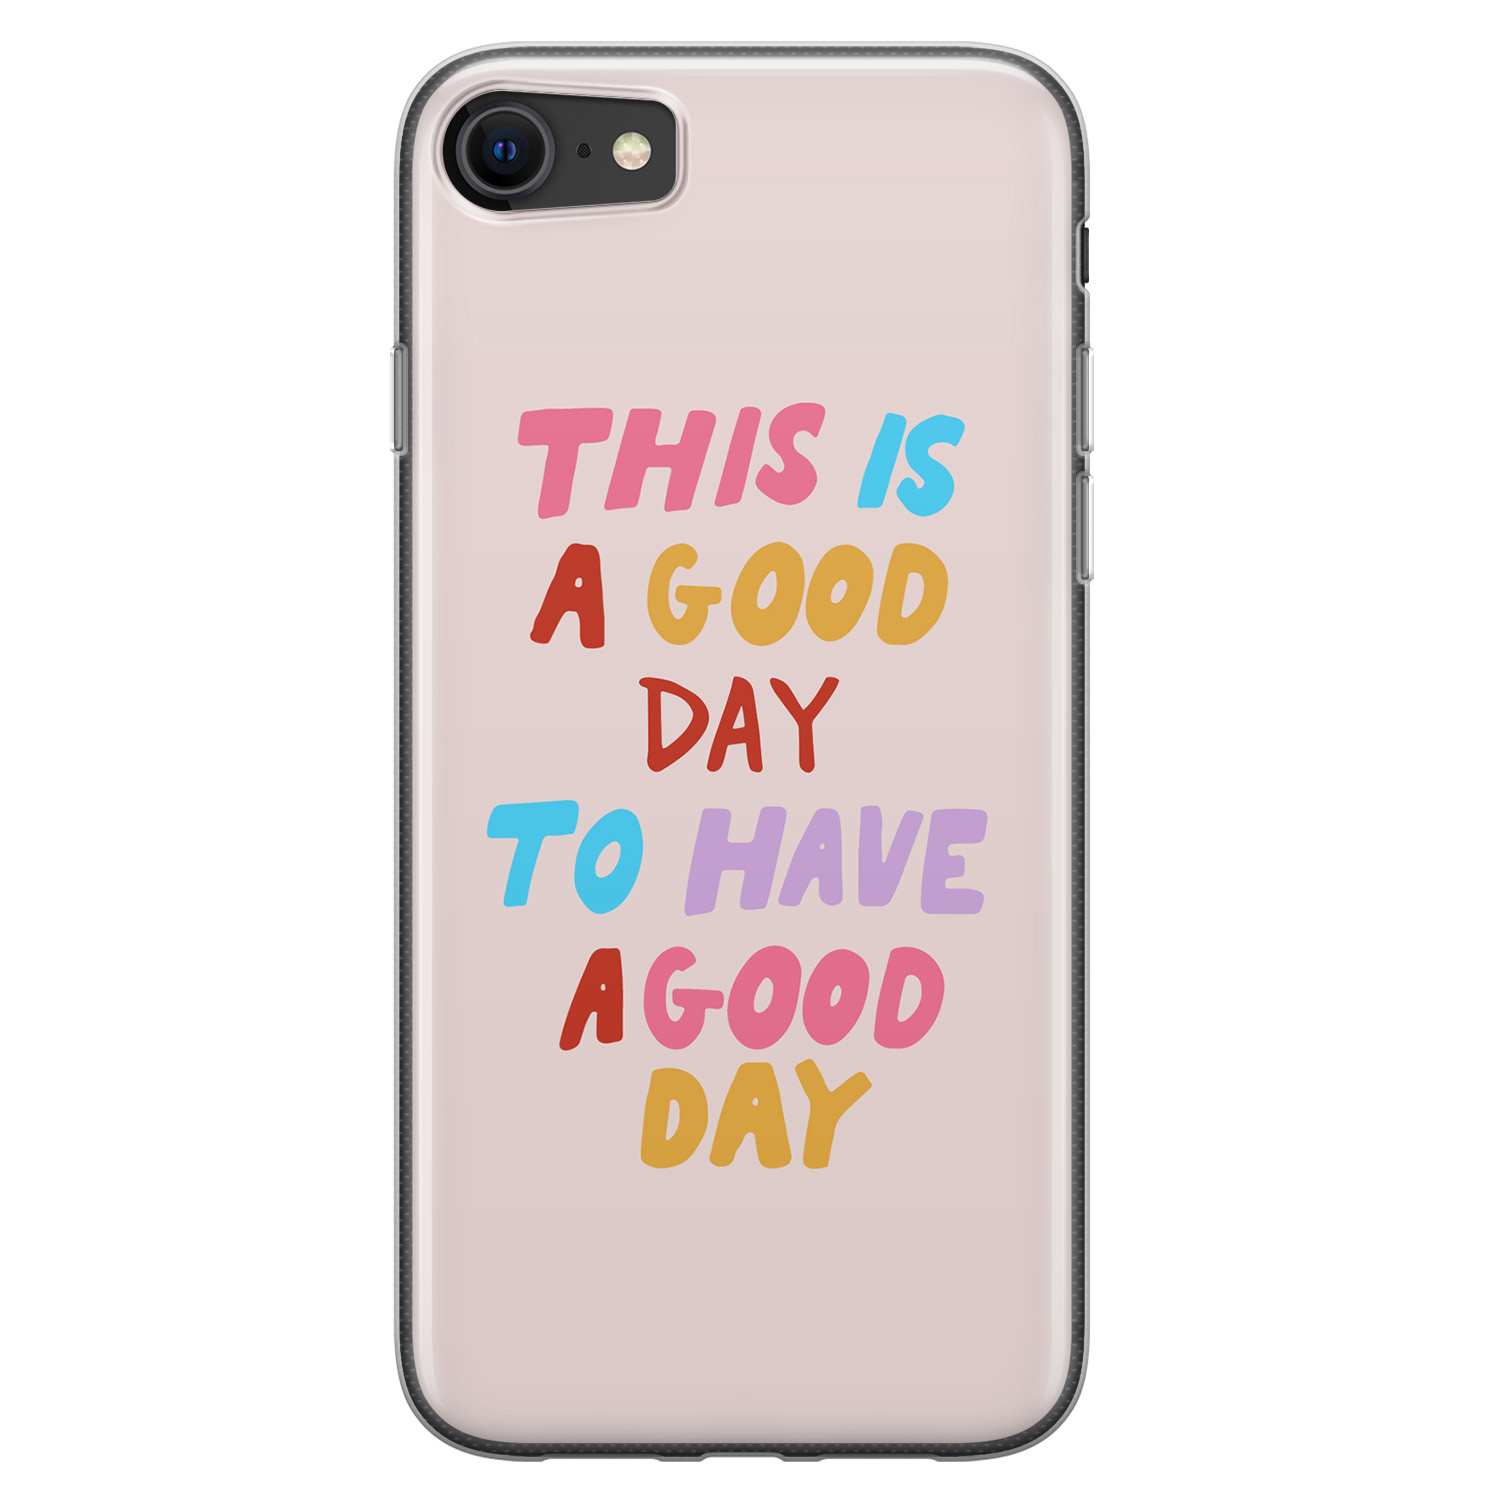 iPhone SE 2020 siliconen hoesje - This is a good day